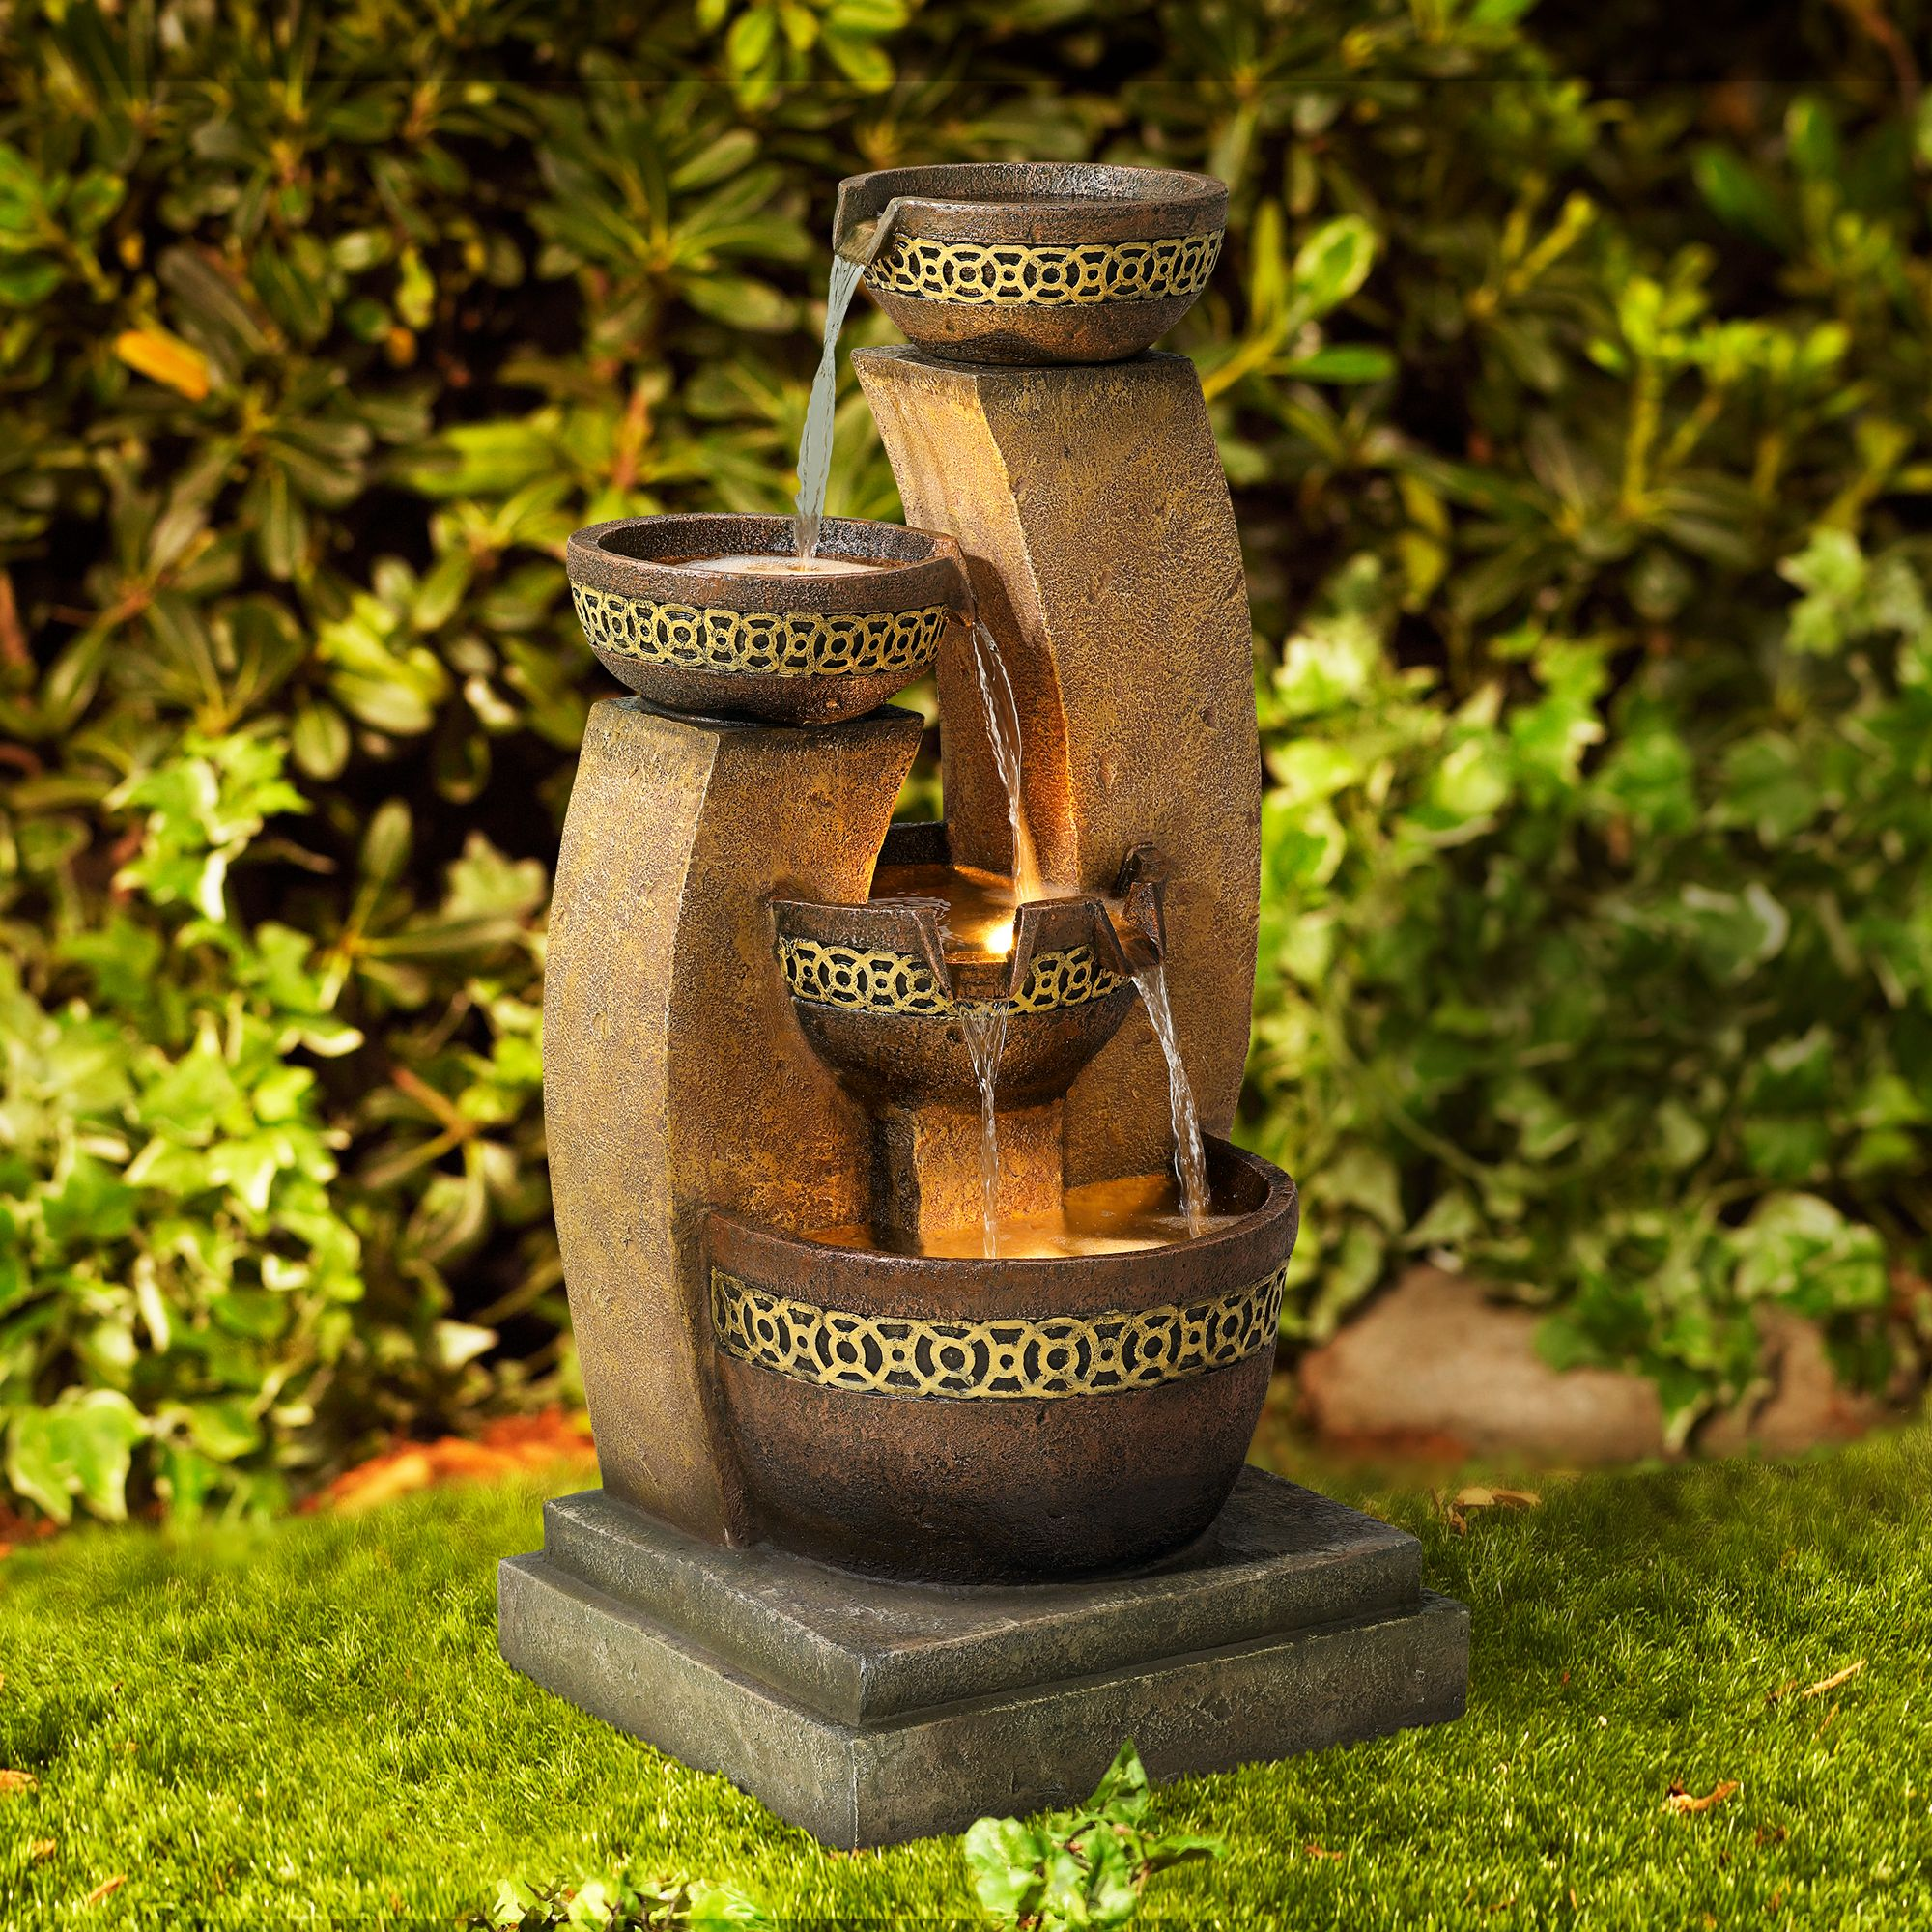 Outdoor Fountains - Patio & Garden Water Fountains | Lamps Plus